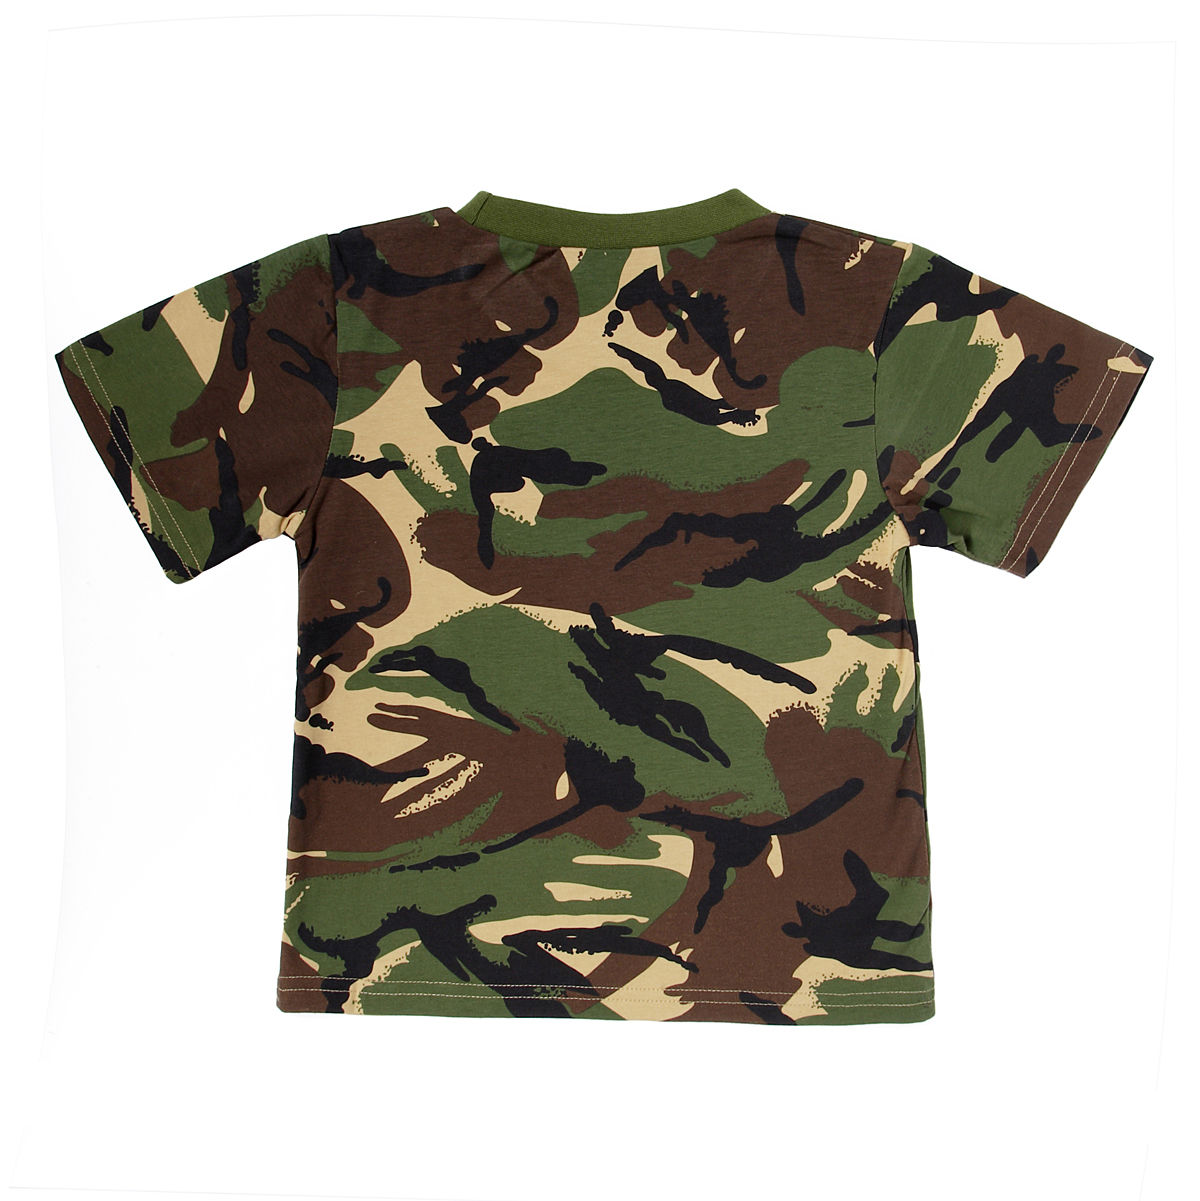 Just Camo has an extensive collection of camouflage and nature-related items for baby or toddler. Shop crib sets, bibs, clothing, gifts and more in popular brands such as Browning, Mossy Oak, Realtree and True Timber.